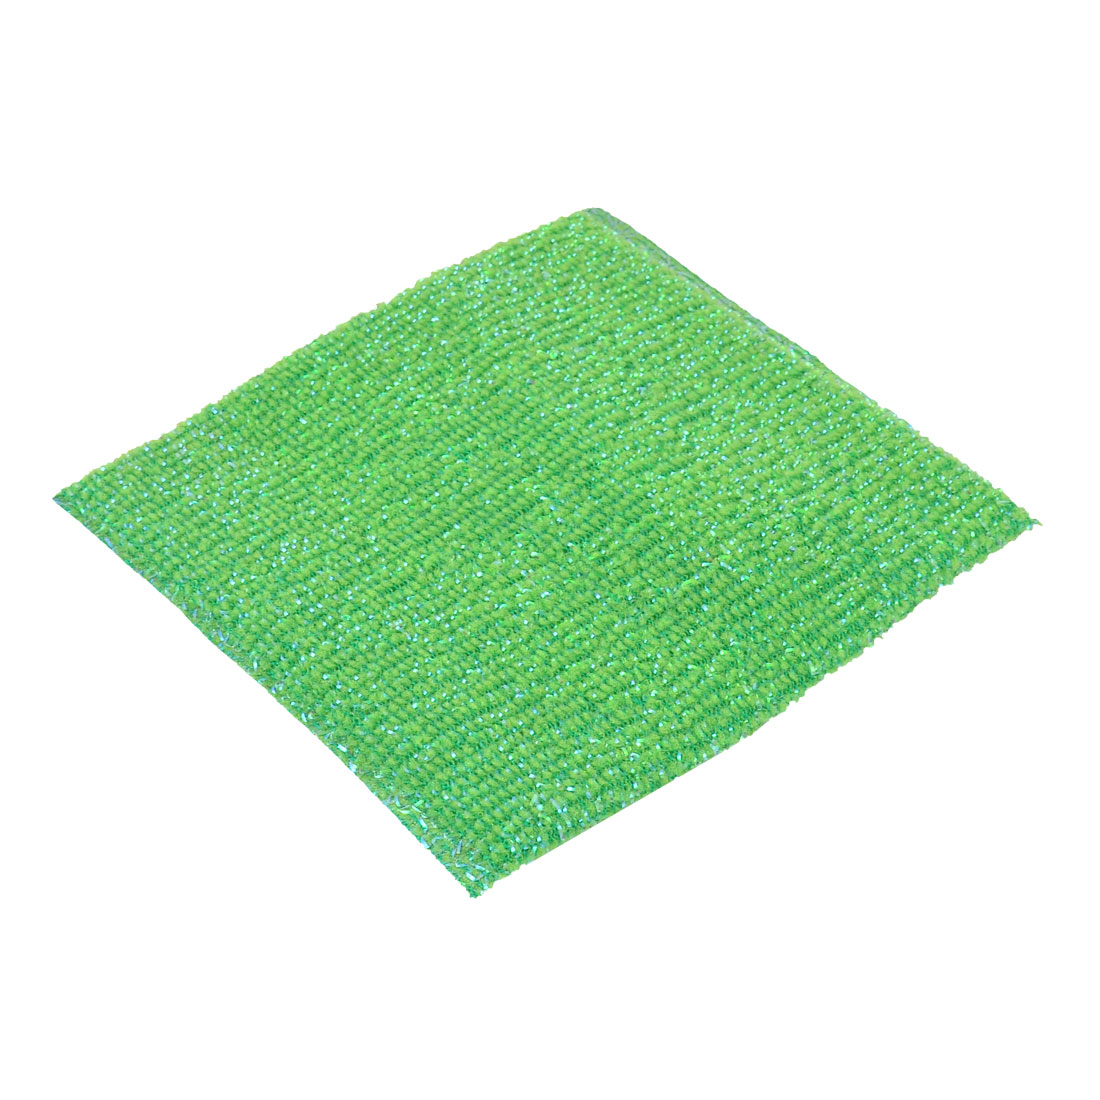 Kitchenware Tableware Bowl Plate Duster Cleaning Dish Rectangle Scrub Sponge Cloth Green